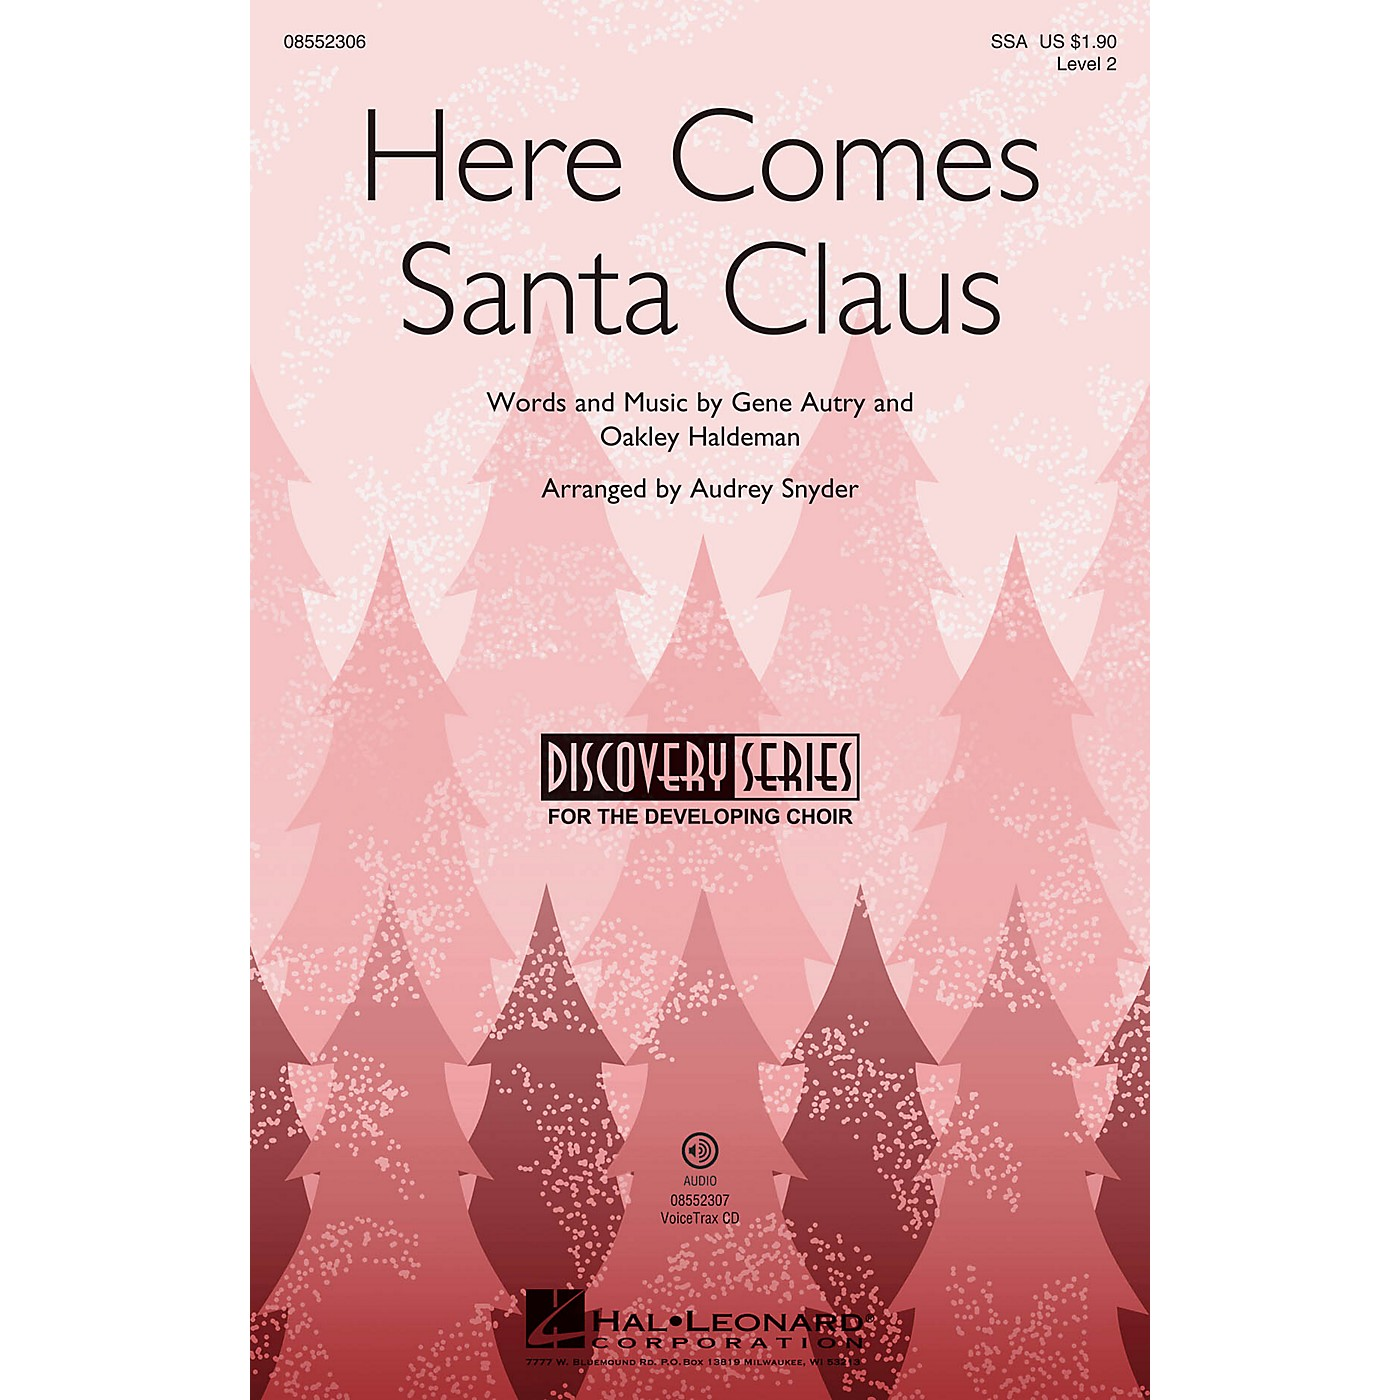 Hal Leonard Here Comes Santa Claus (Discovery Level 2) VoiceTrax CD by Gene Autry Arranged by Audrey Snyder thumbnail